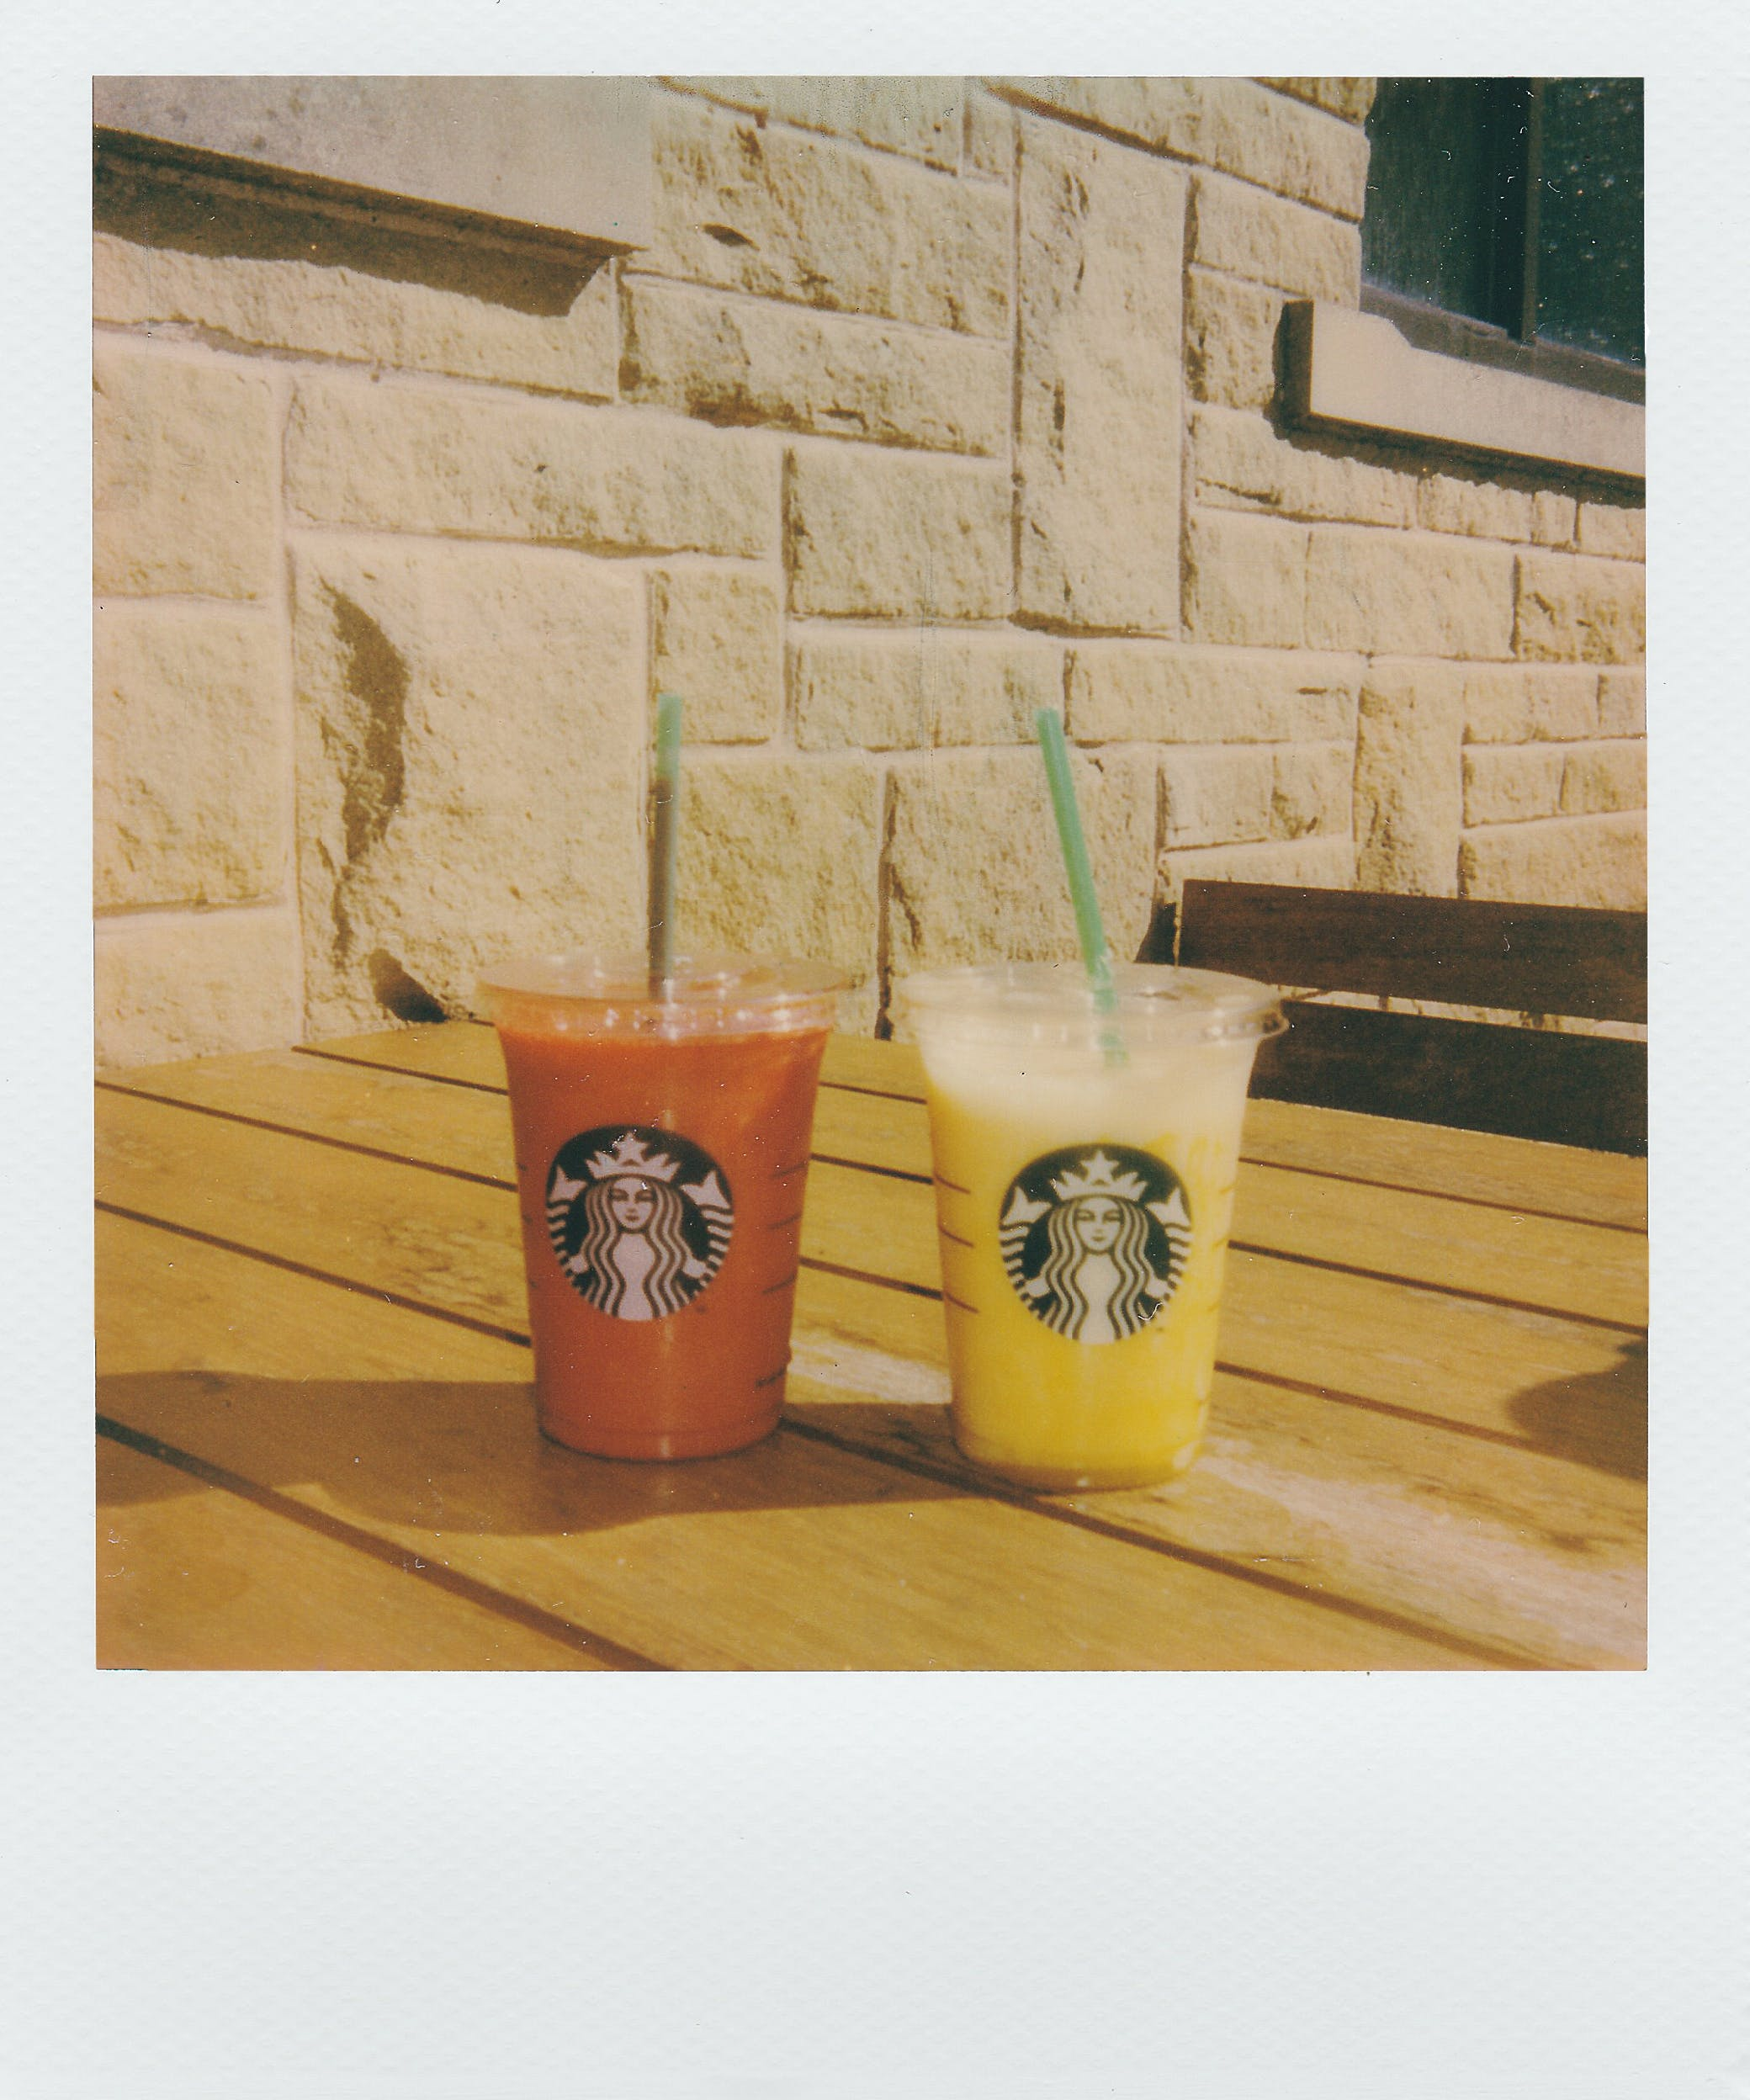 Two Orange and Yellow Starbucks Juices in Plastic Cups With Lids and Straws